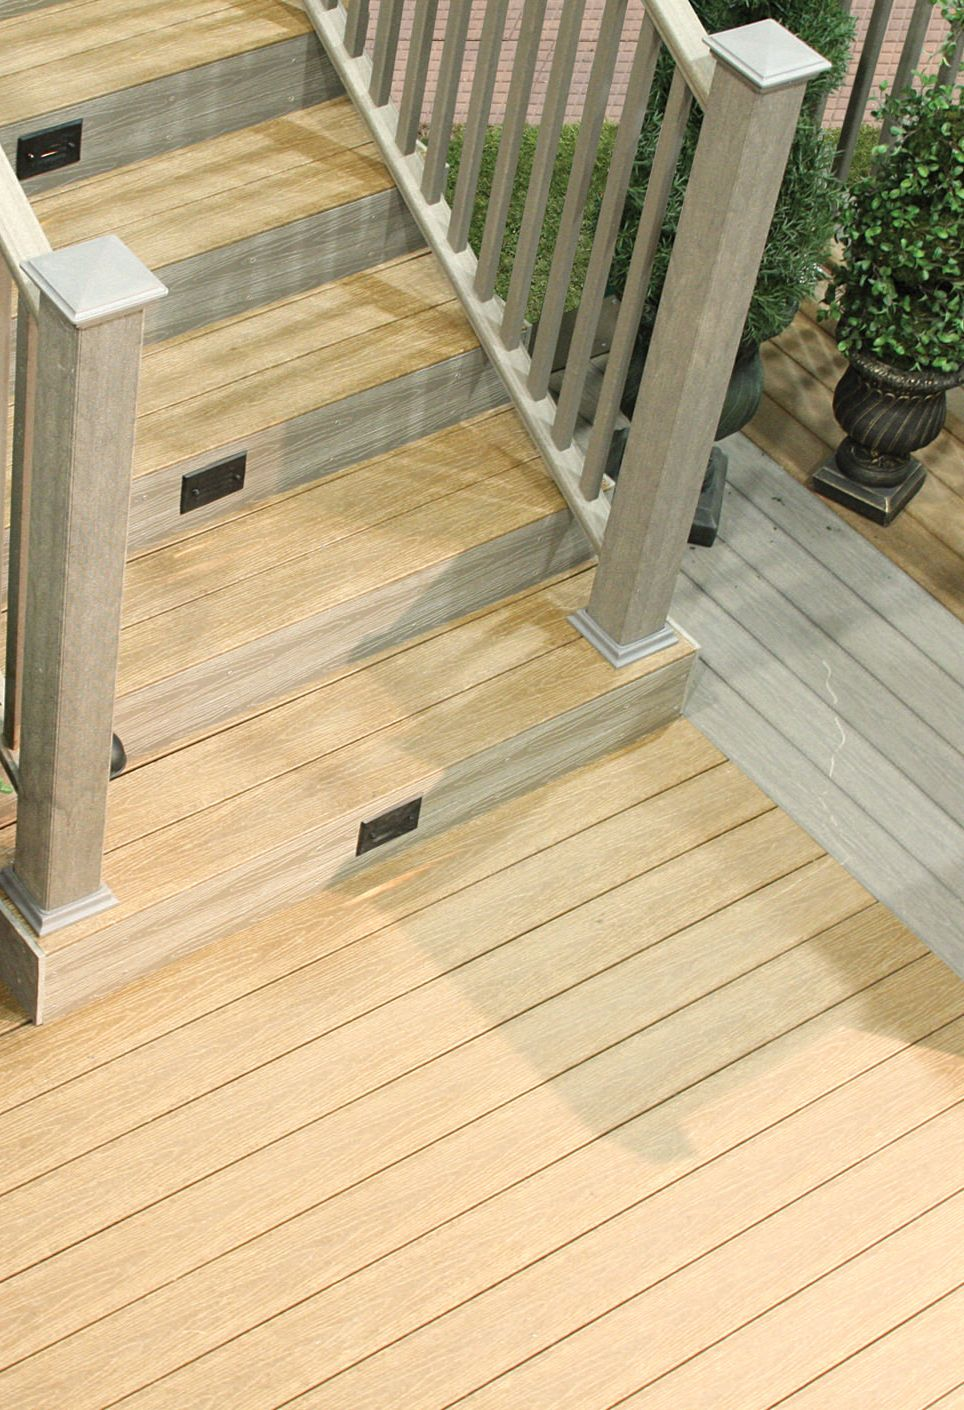 Build your dream deck today! A great alternative to wood